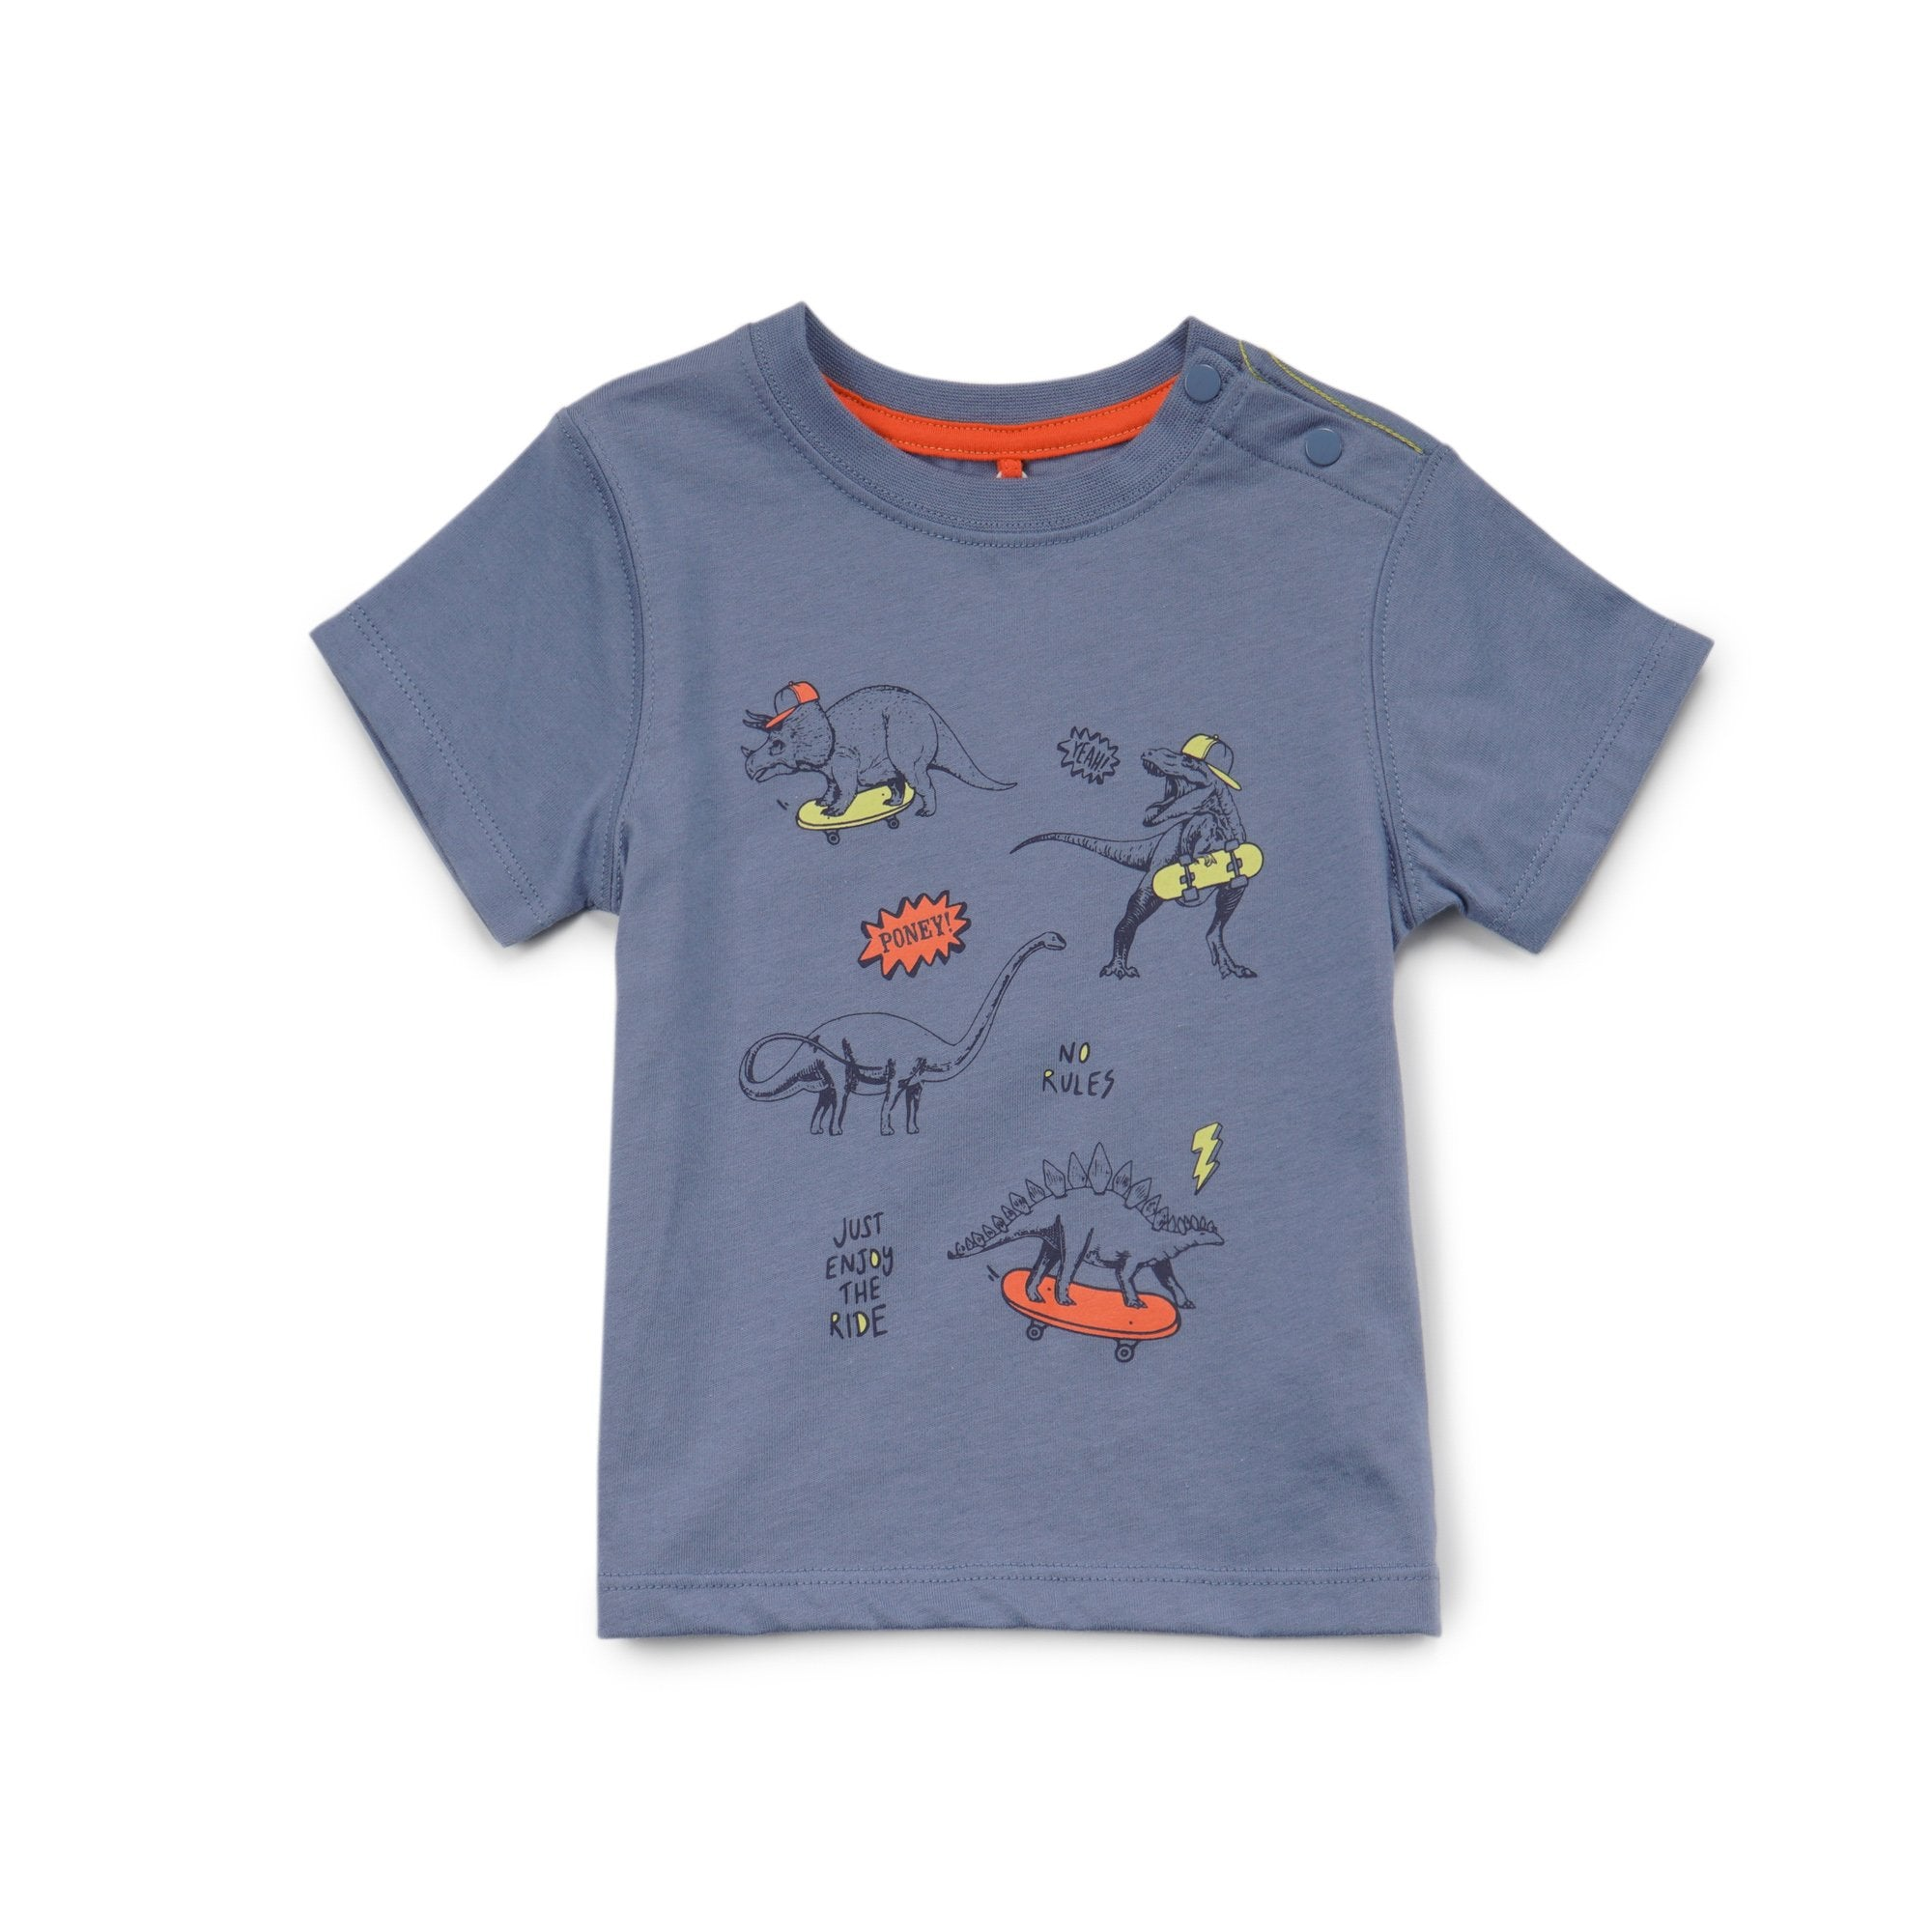 Poney Boys ShortSleeve Tee 8346 (6mths-12yrs)